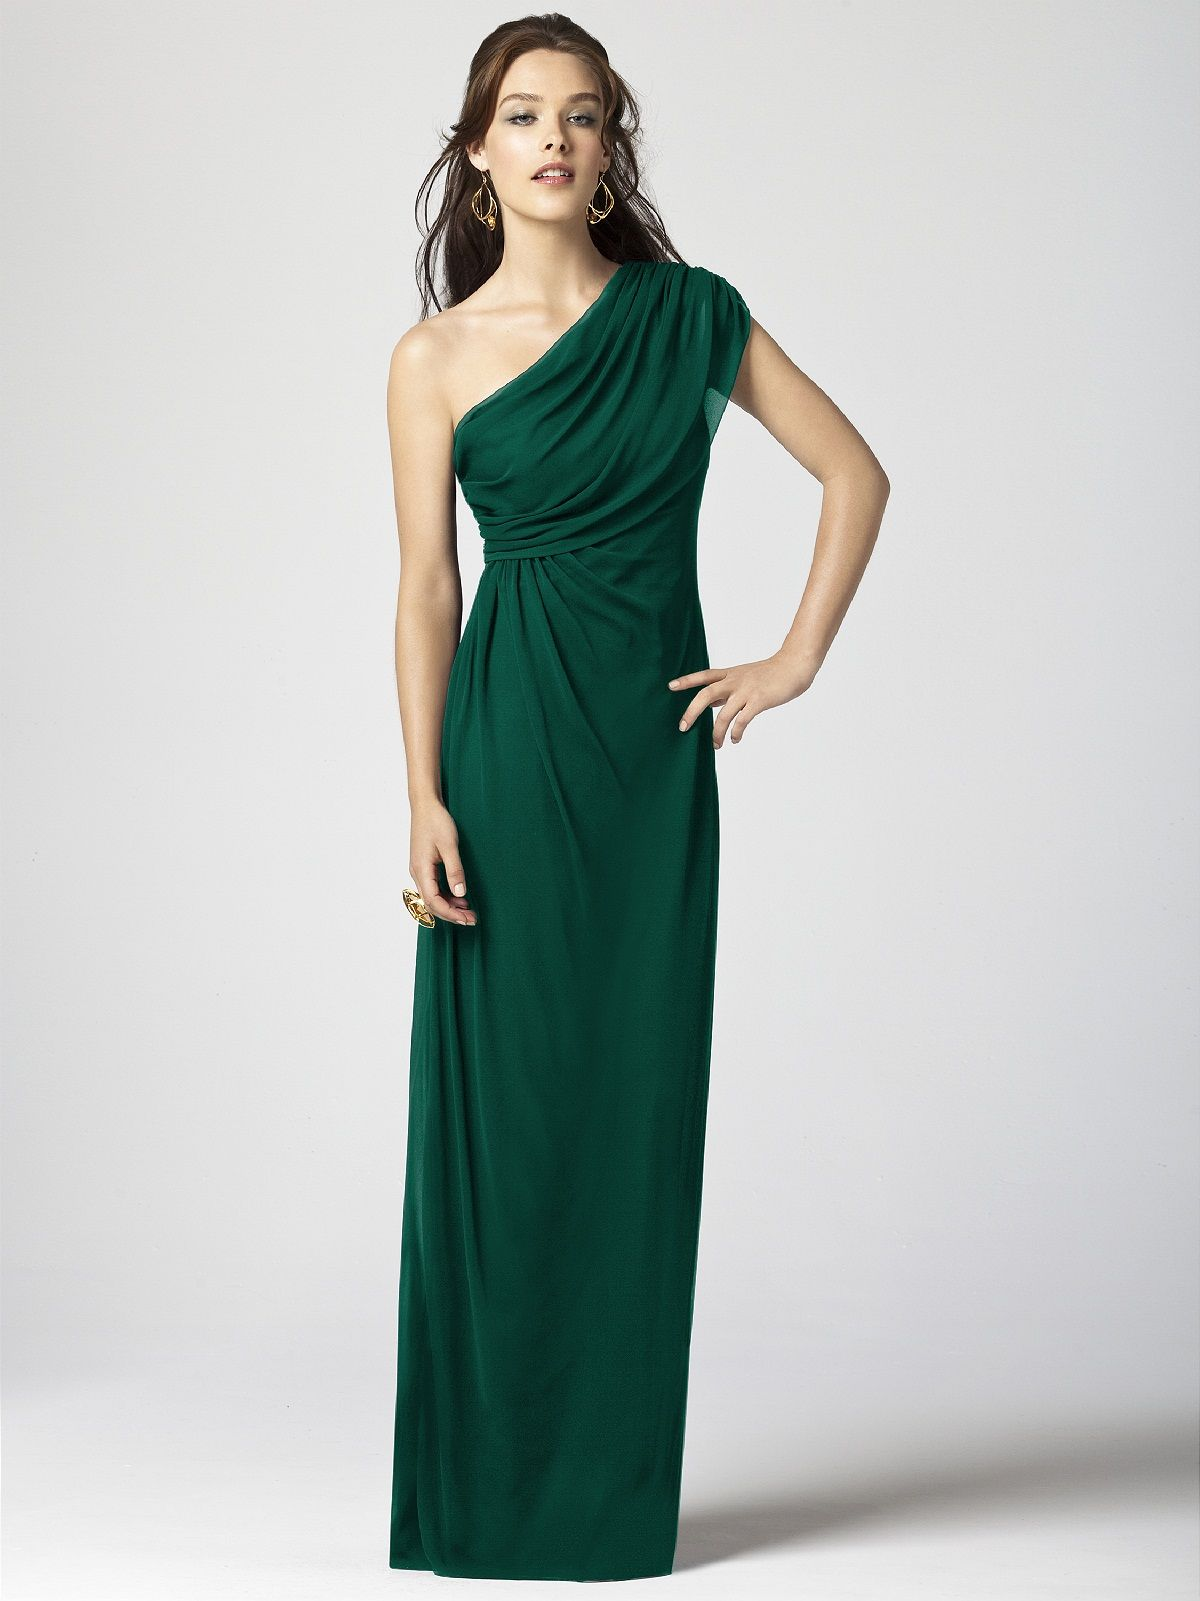 Dessy collection style 2858 emeralds formal gowns and naked dessy collection style 2858 emerald bridesmaid dressesnavy bridesmaidsforest green ombrellifo Choice Image